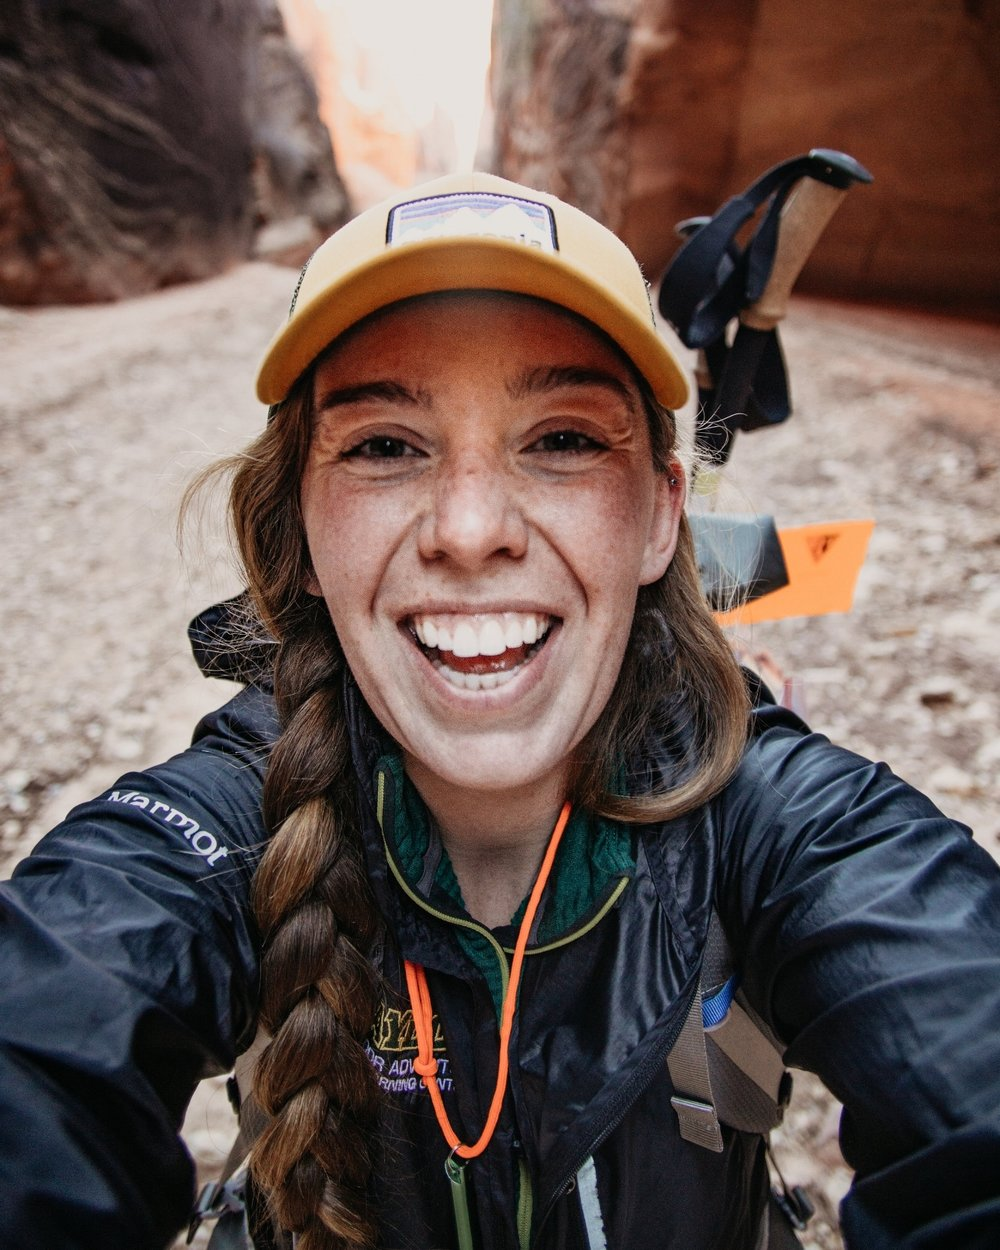 I LOVE backpacking! This is from when I backpacked all of Paria Canyon in Utah/Arizona. It was amazing! [I'm also a Wilderness First Responder - holla]